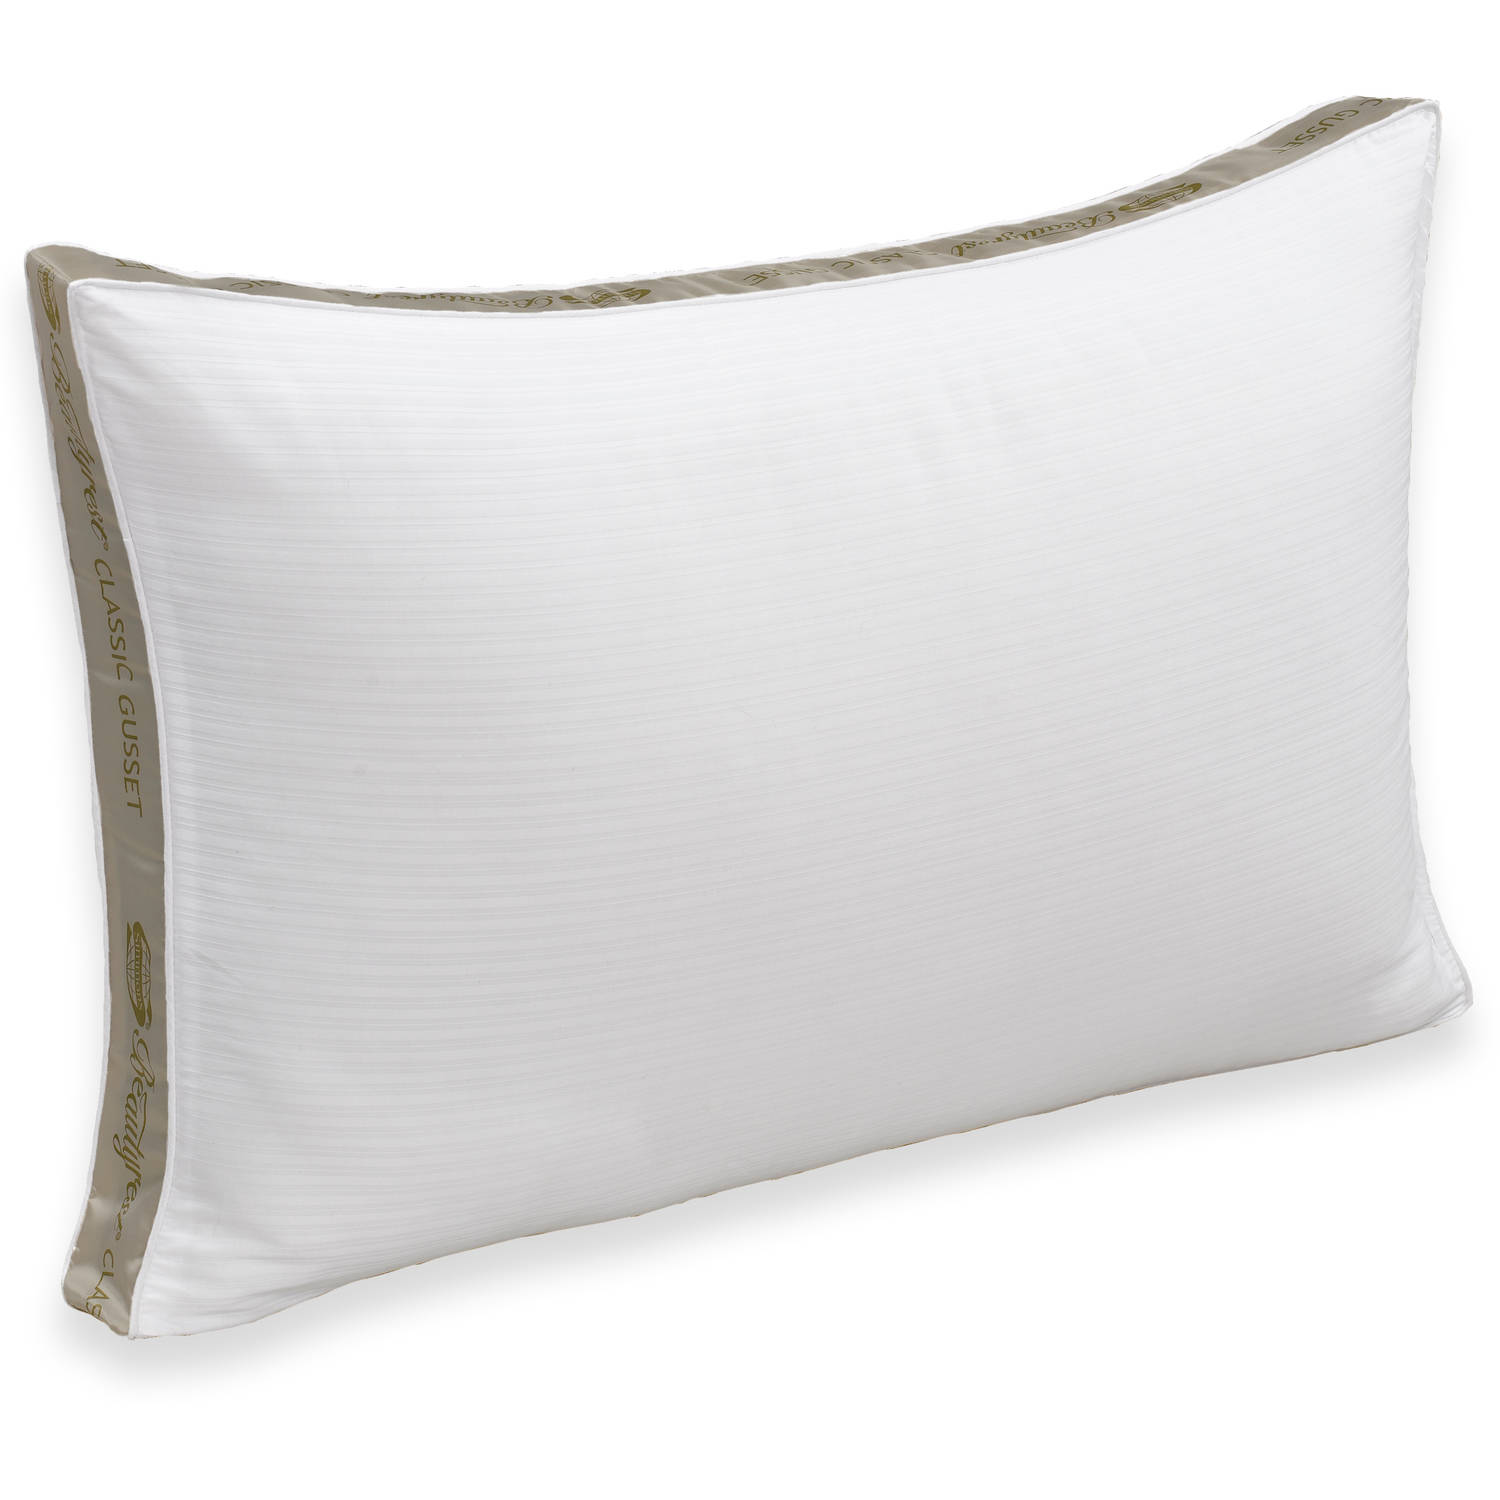 Ultrasoft Quilted Sidewall Bed Pillows Extra Firm Set of 2